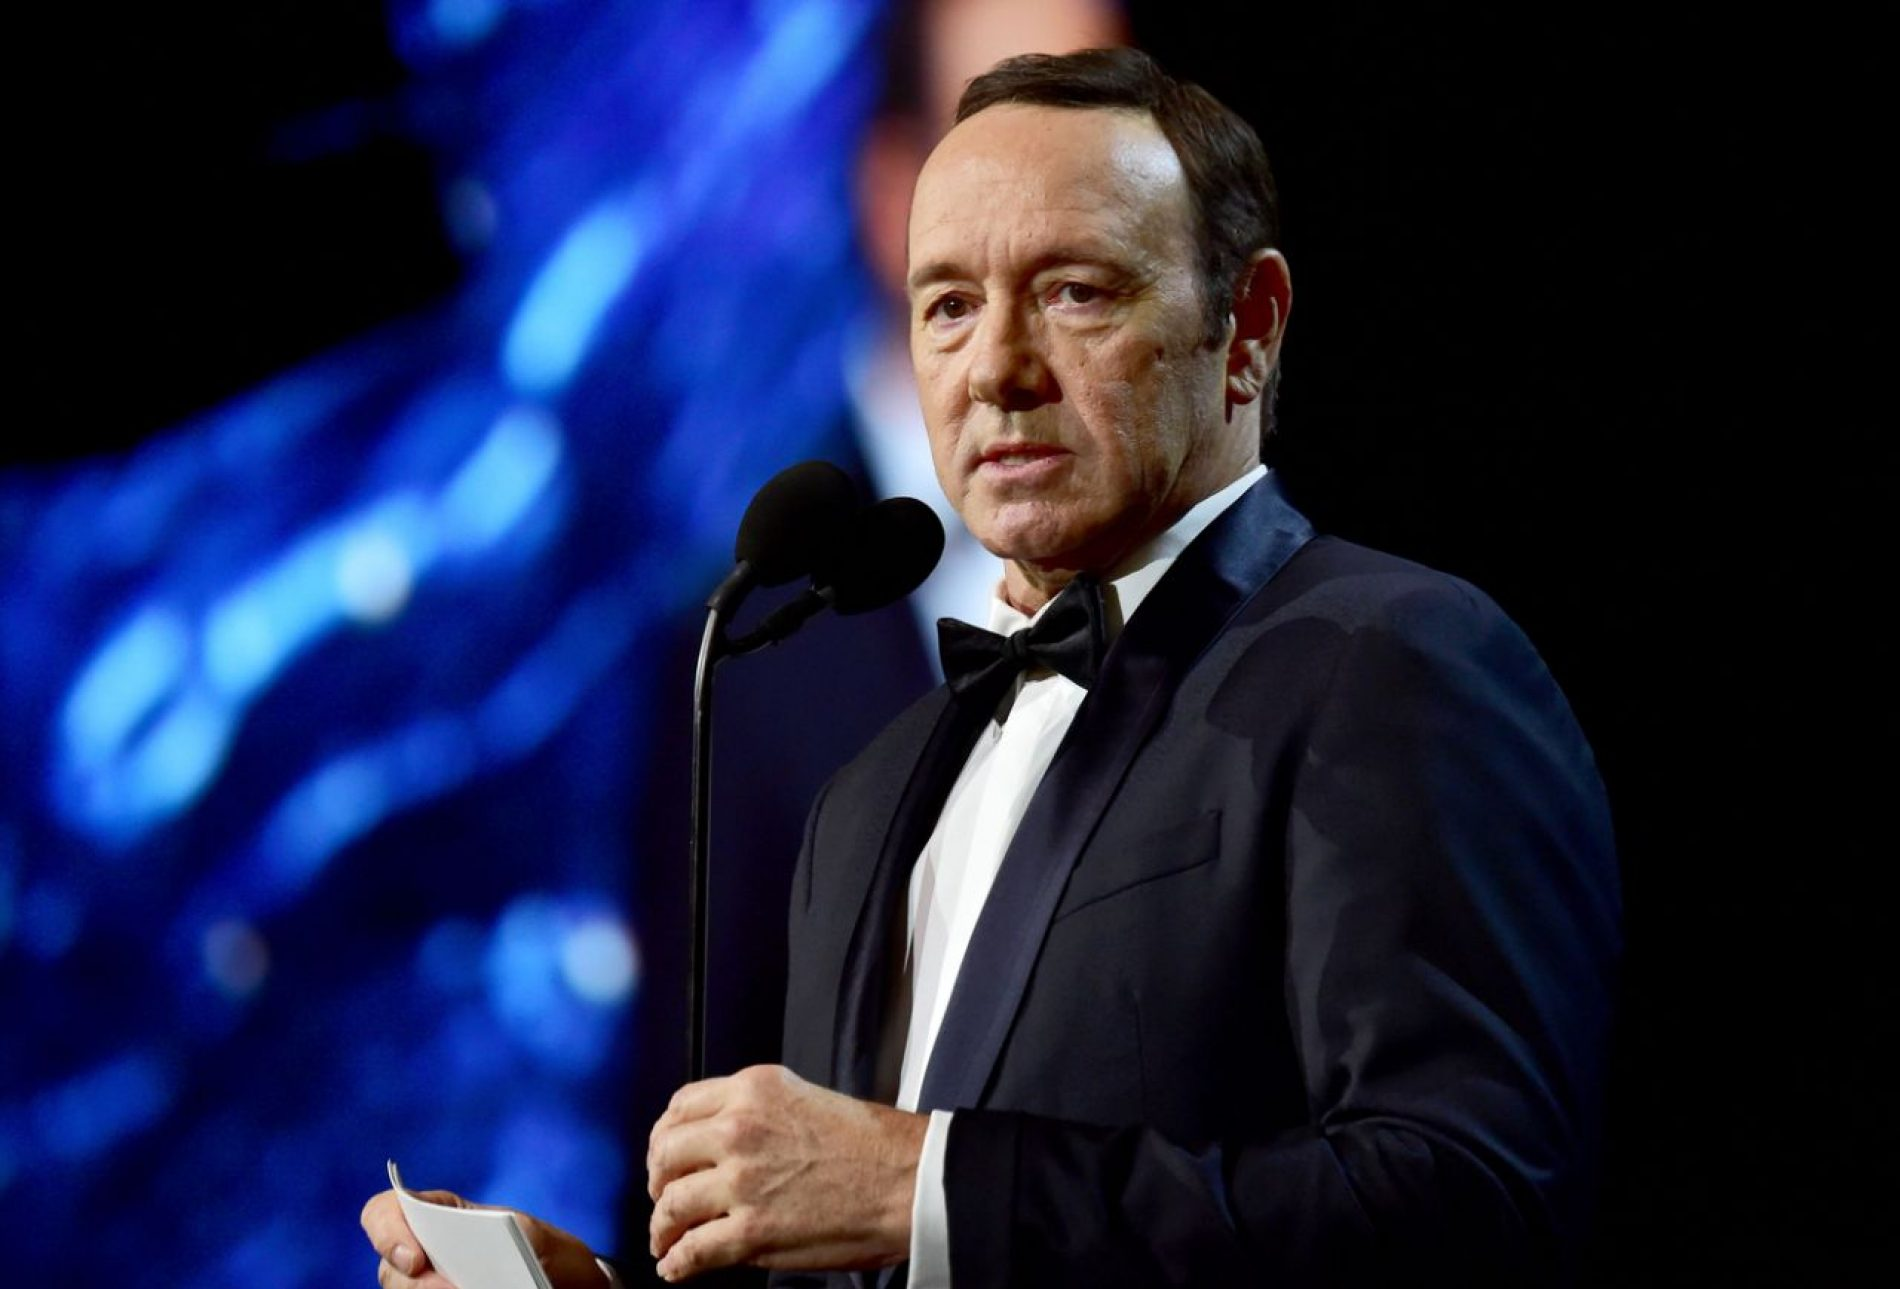 """""""The Accuser Never Said 'Stop. I Don't Give Consent.'"""" Kevin Spacey Pushes Back on Sex Assault Allegation in Court"""